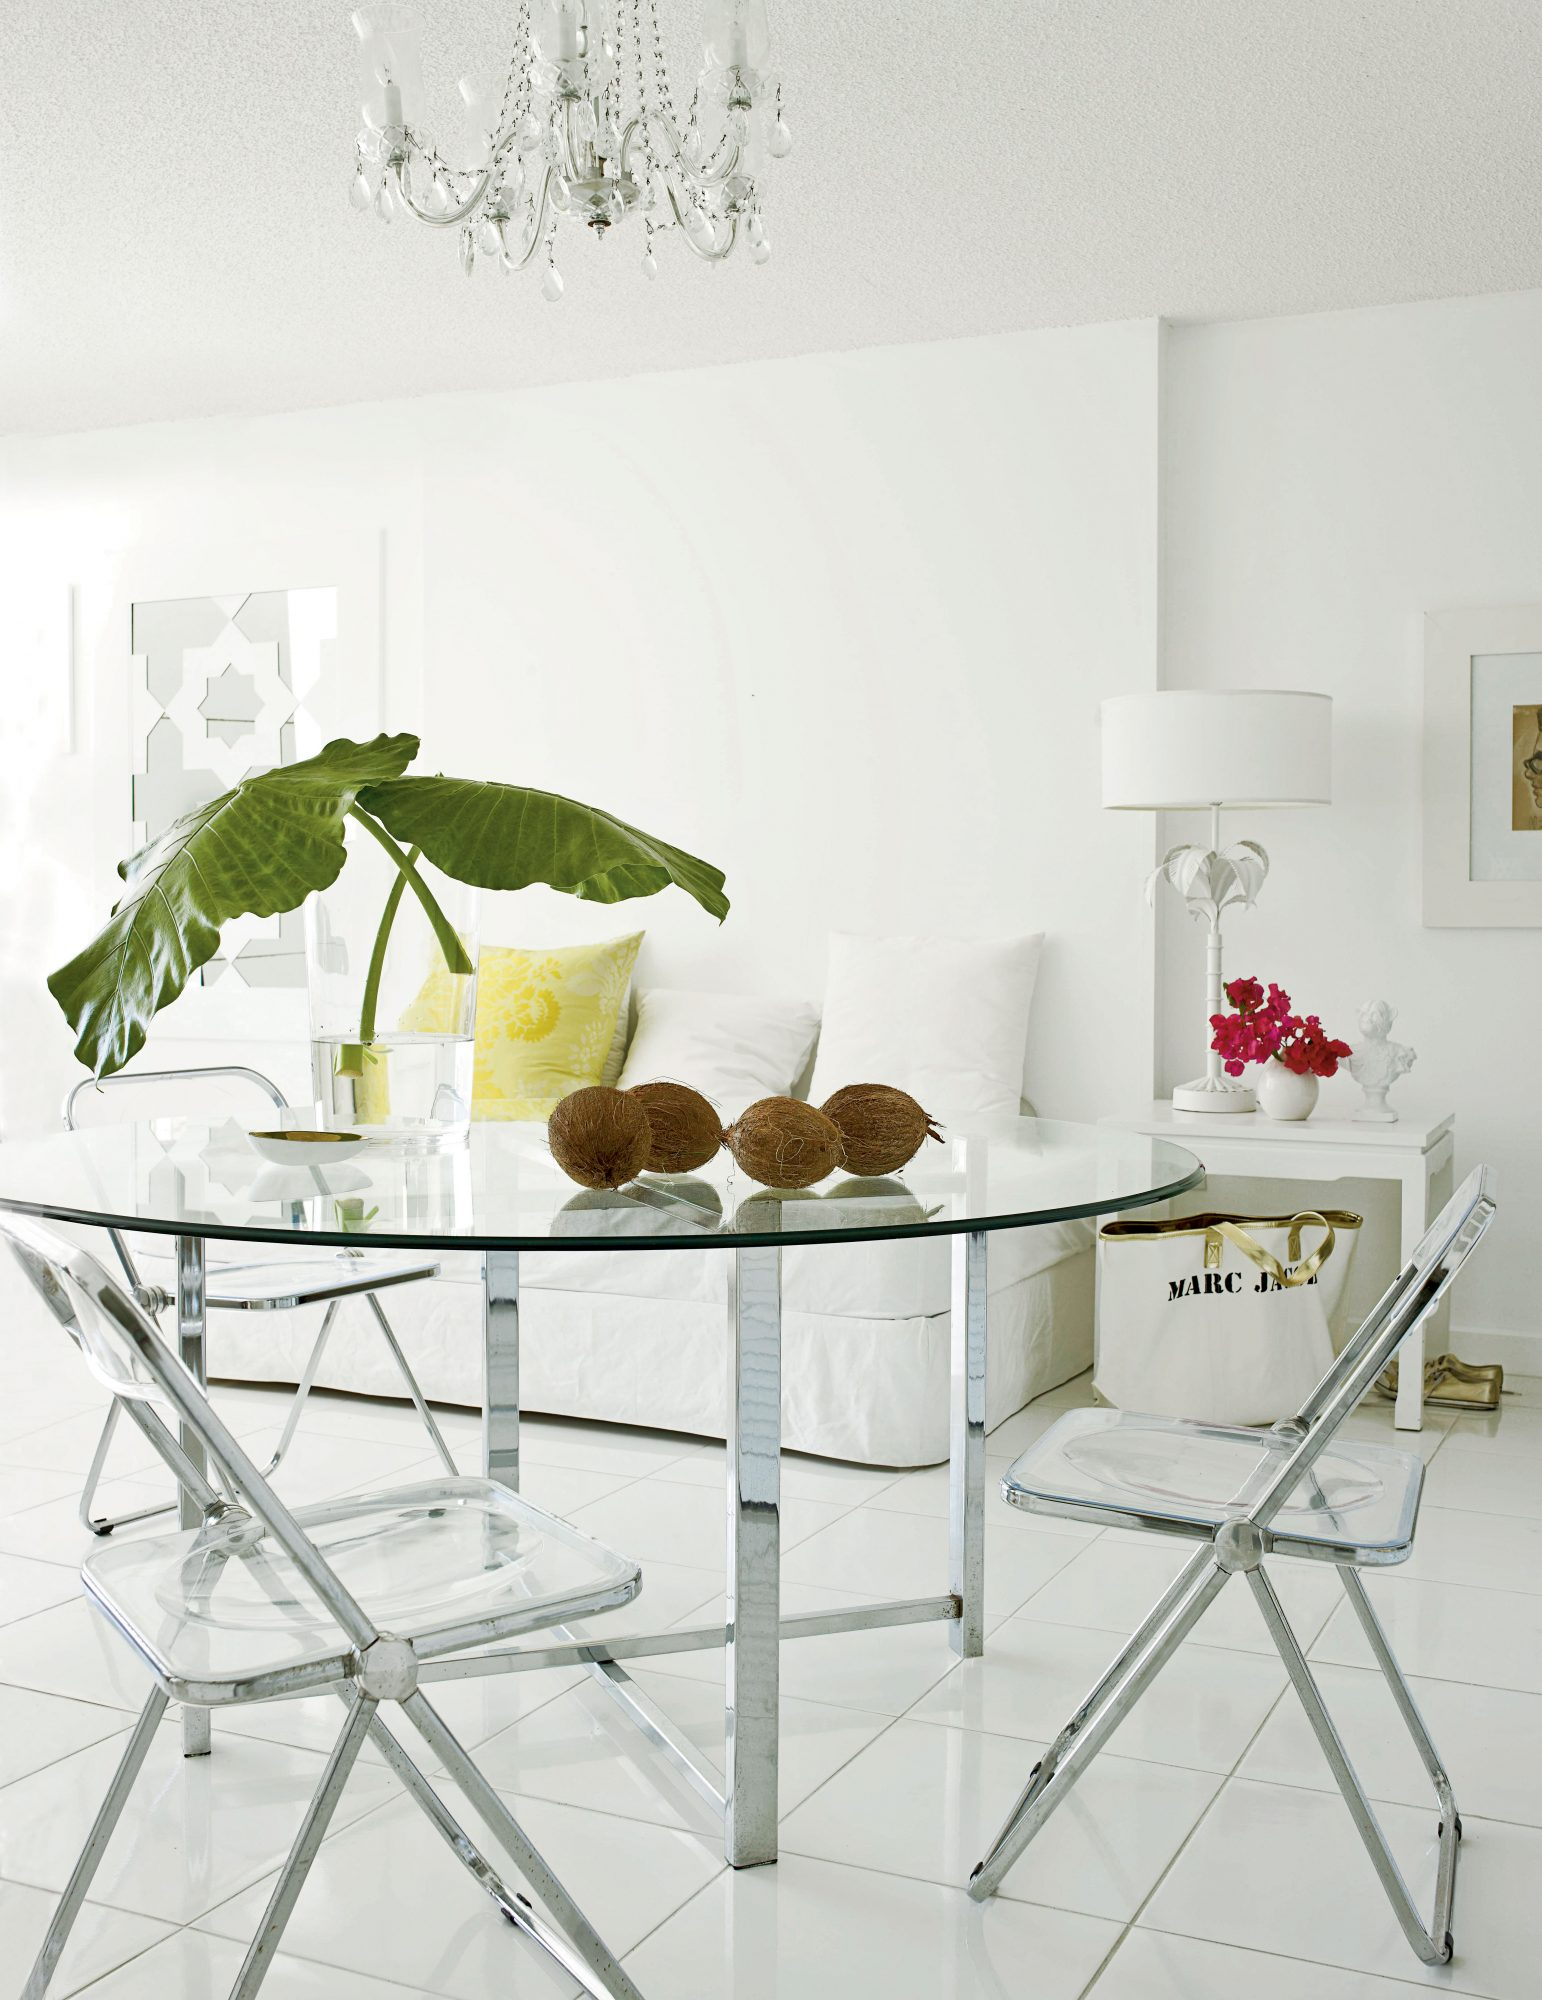 Two acrylic folding chairs paired with a glass table create a streamlined dining area without overwhelming the compact space.